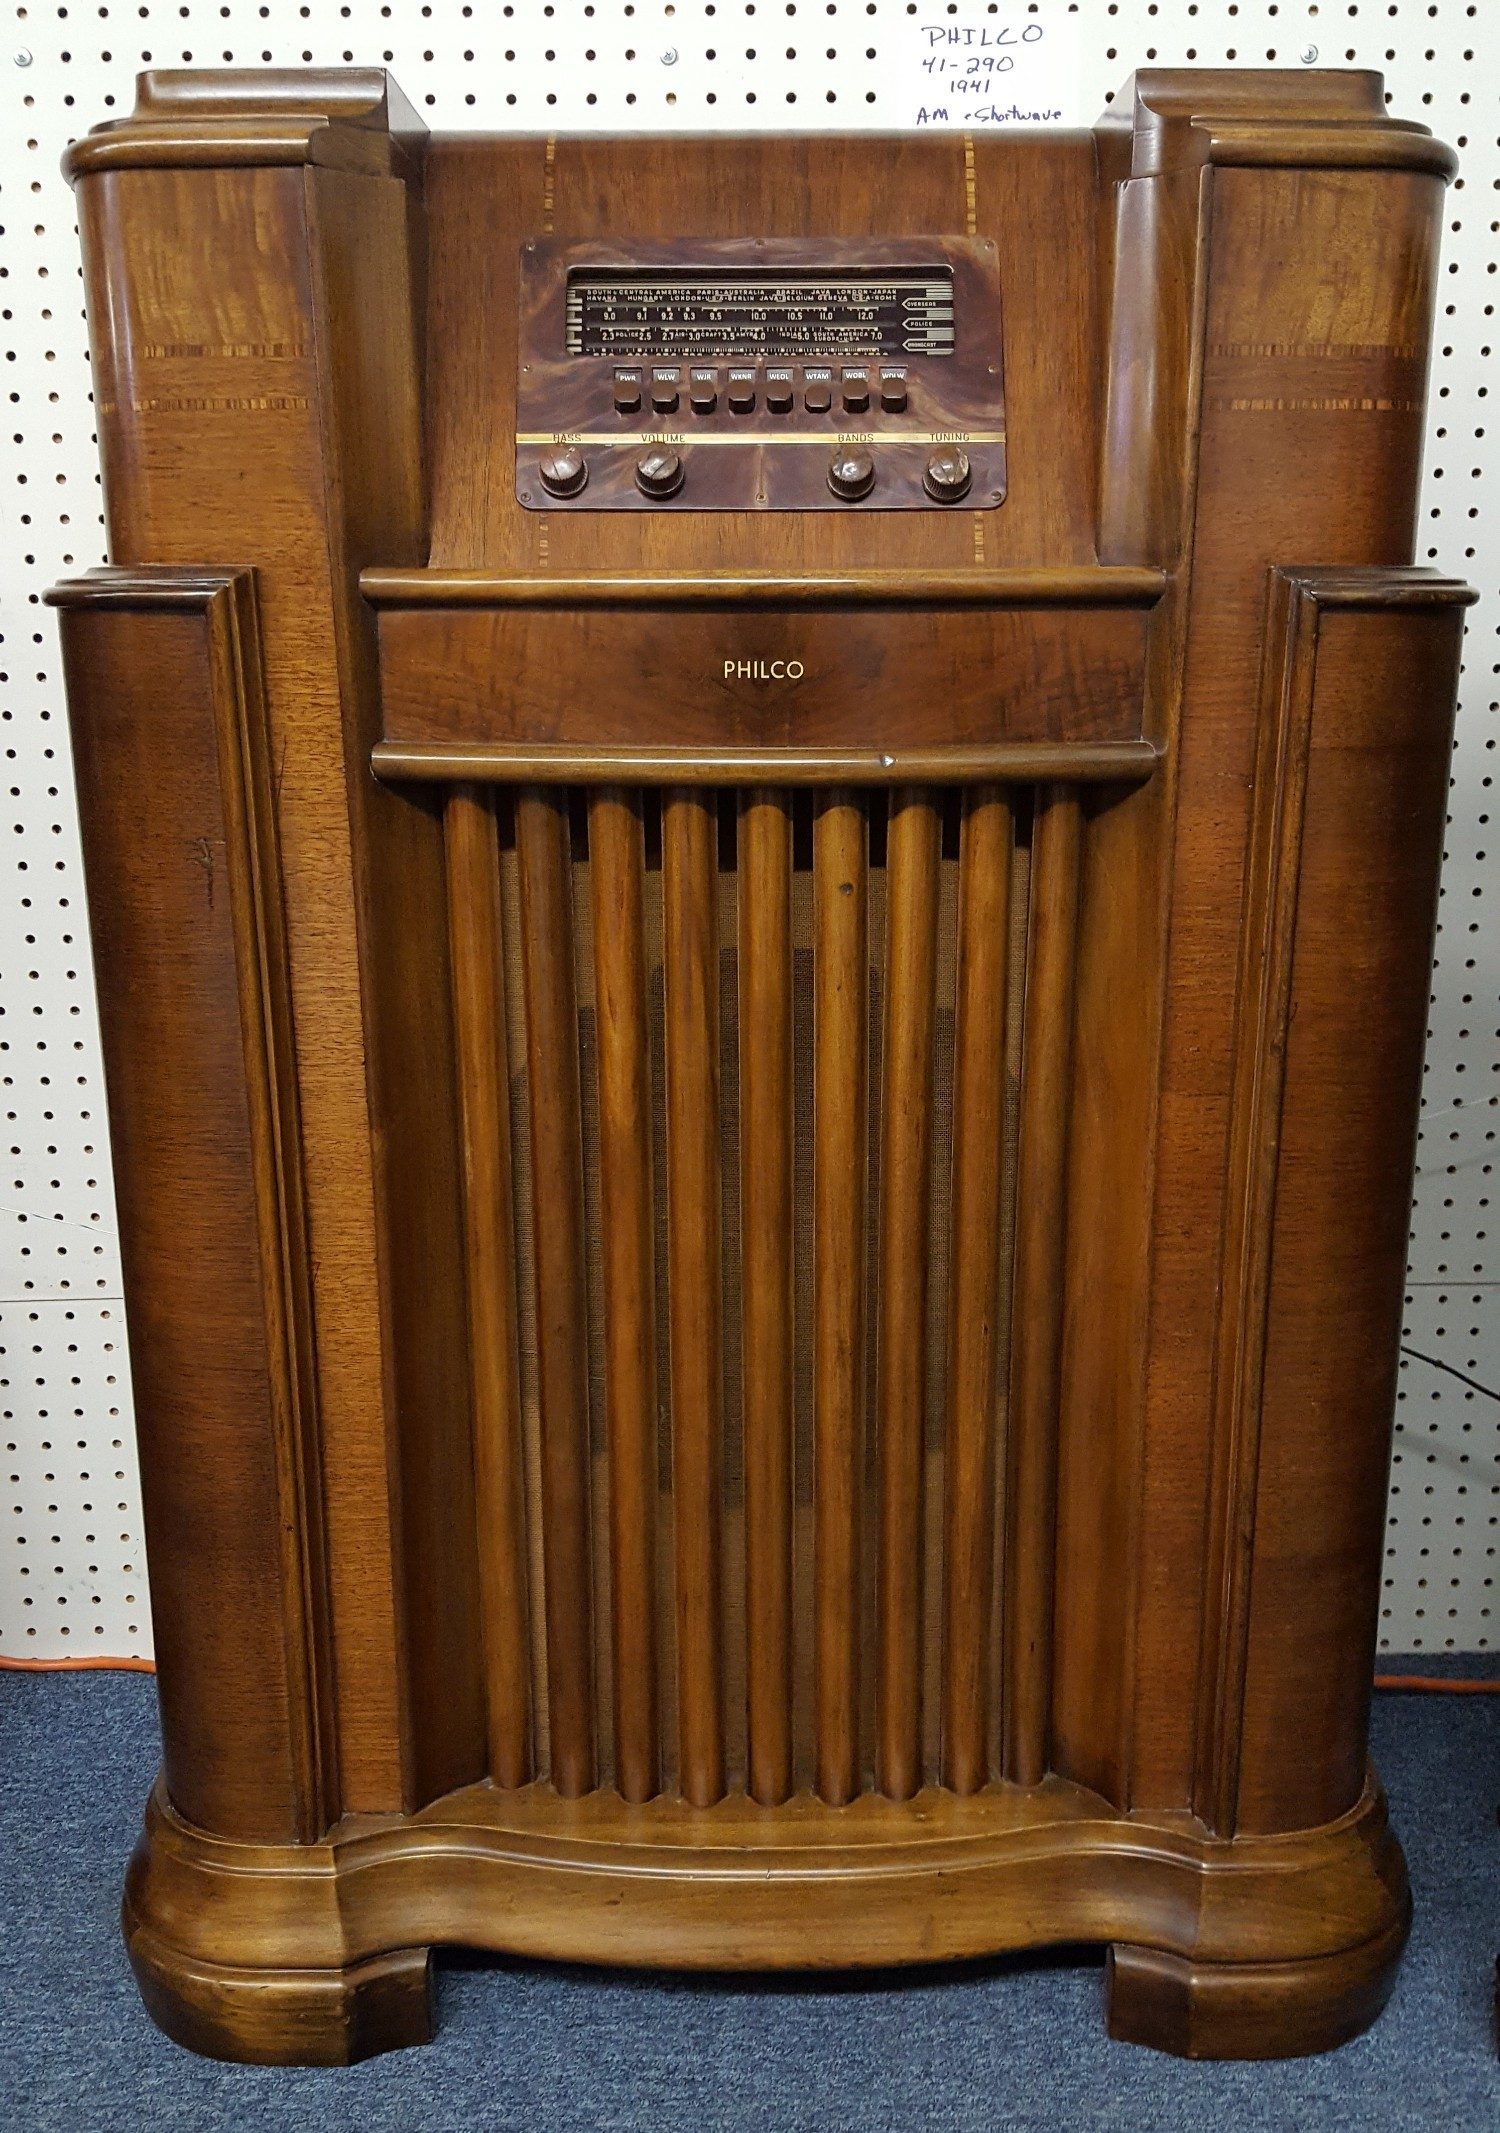 Completely refinished with hand polished laquer. Rotatable rear antenna.  The cabinet originally housed a Model 41-285 chassis but was upgraded to a  41-290. - AntiqueRadio